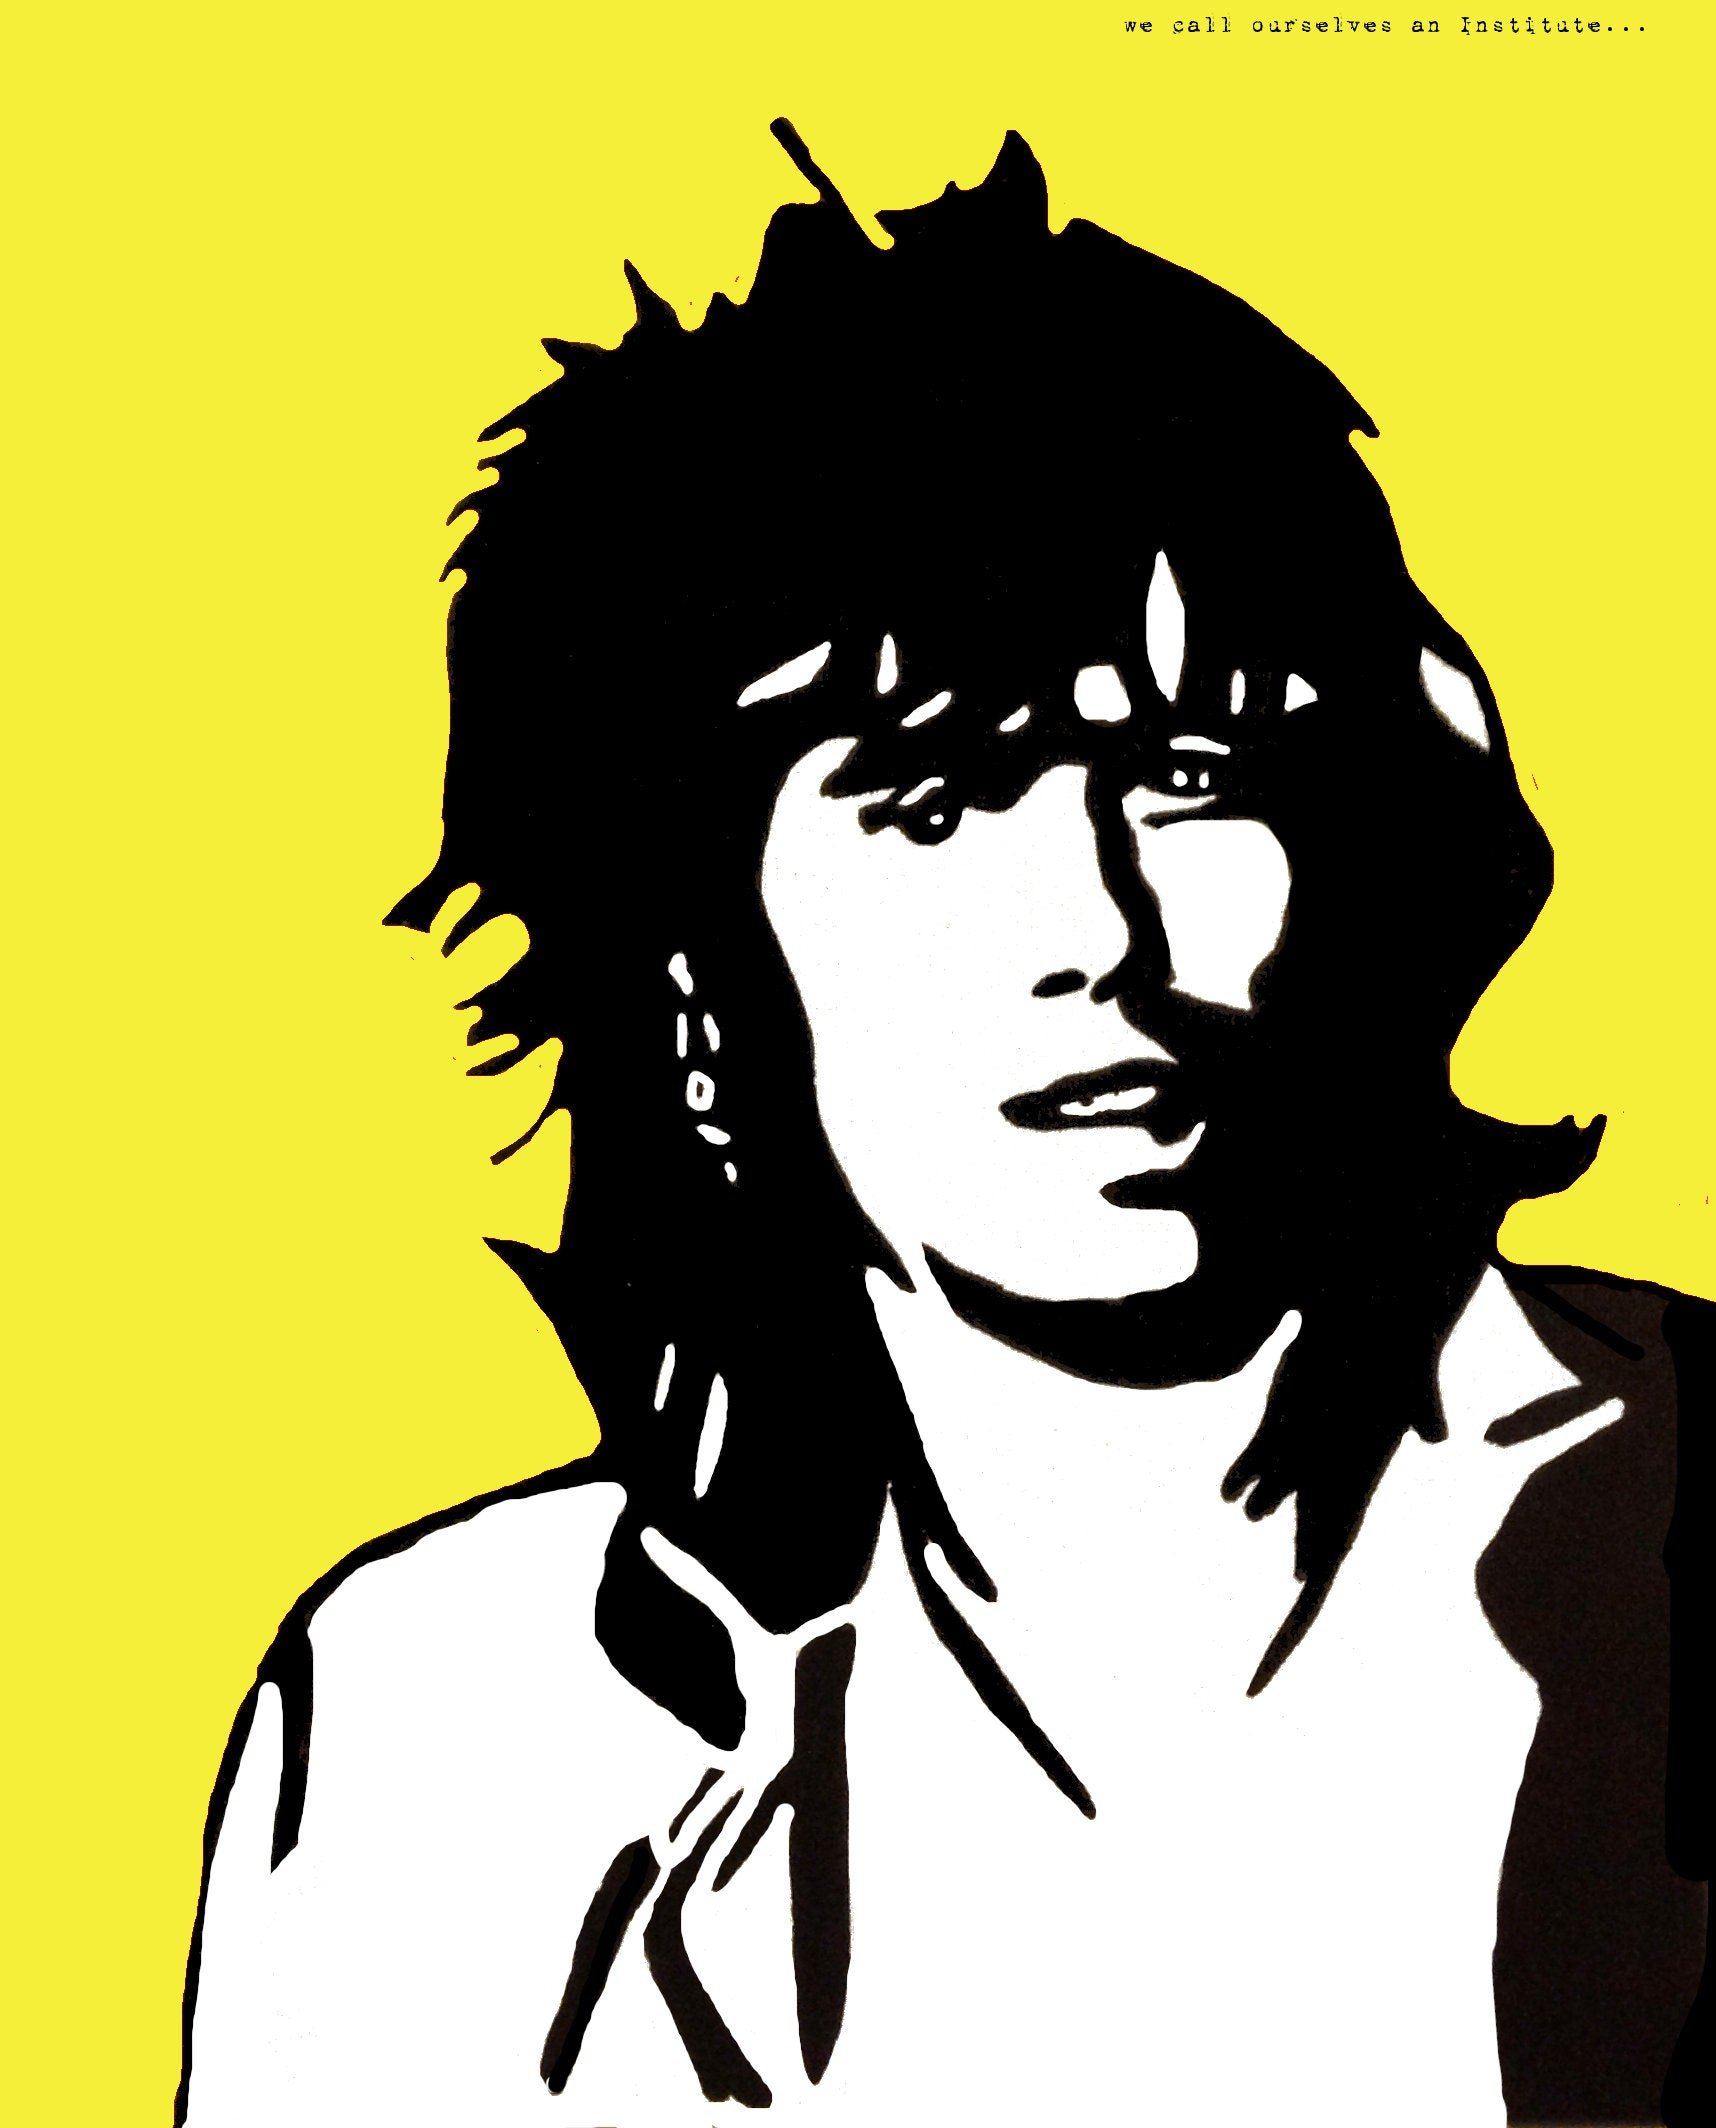 Keith Richards of The Rolling Stones Art Print Free | Etsy